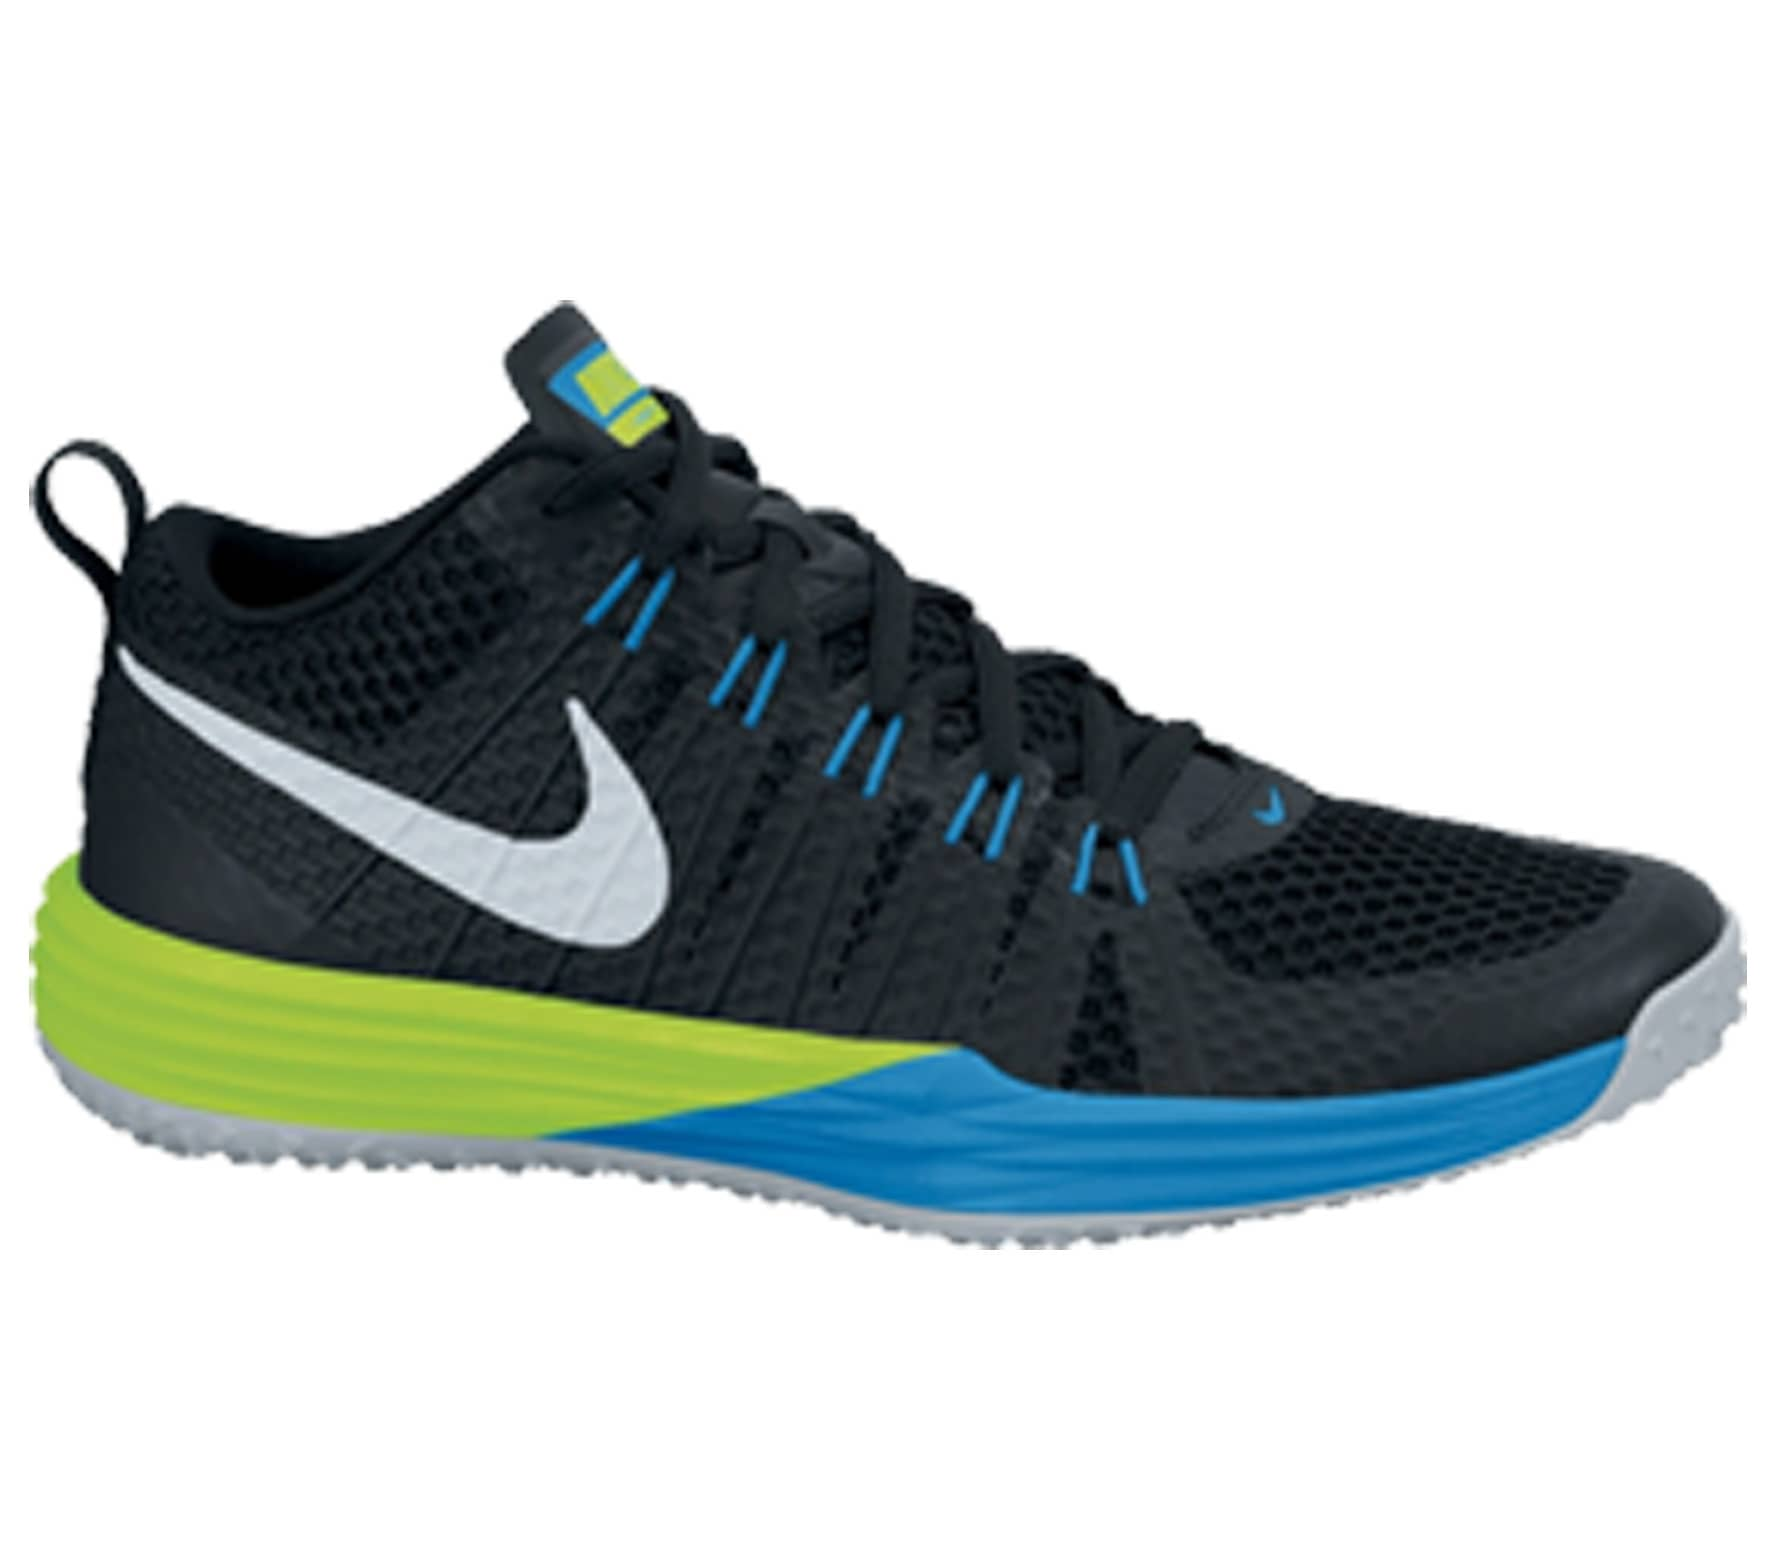 4f8d4de4cce7c Nike - Lunar TR1 men s training shoes (black blue green) - buy it at ...